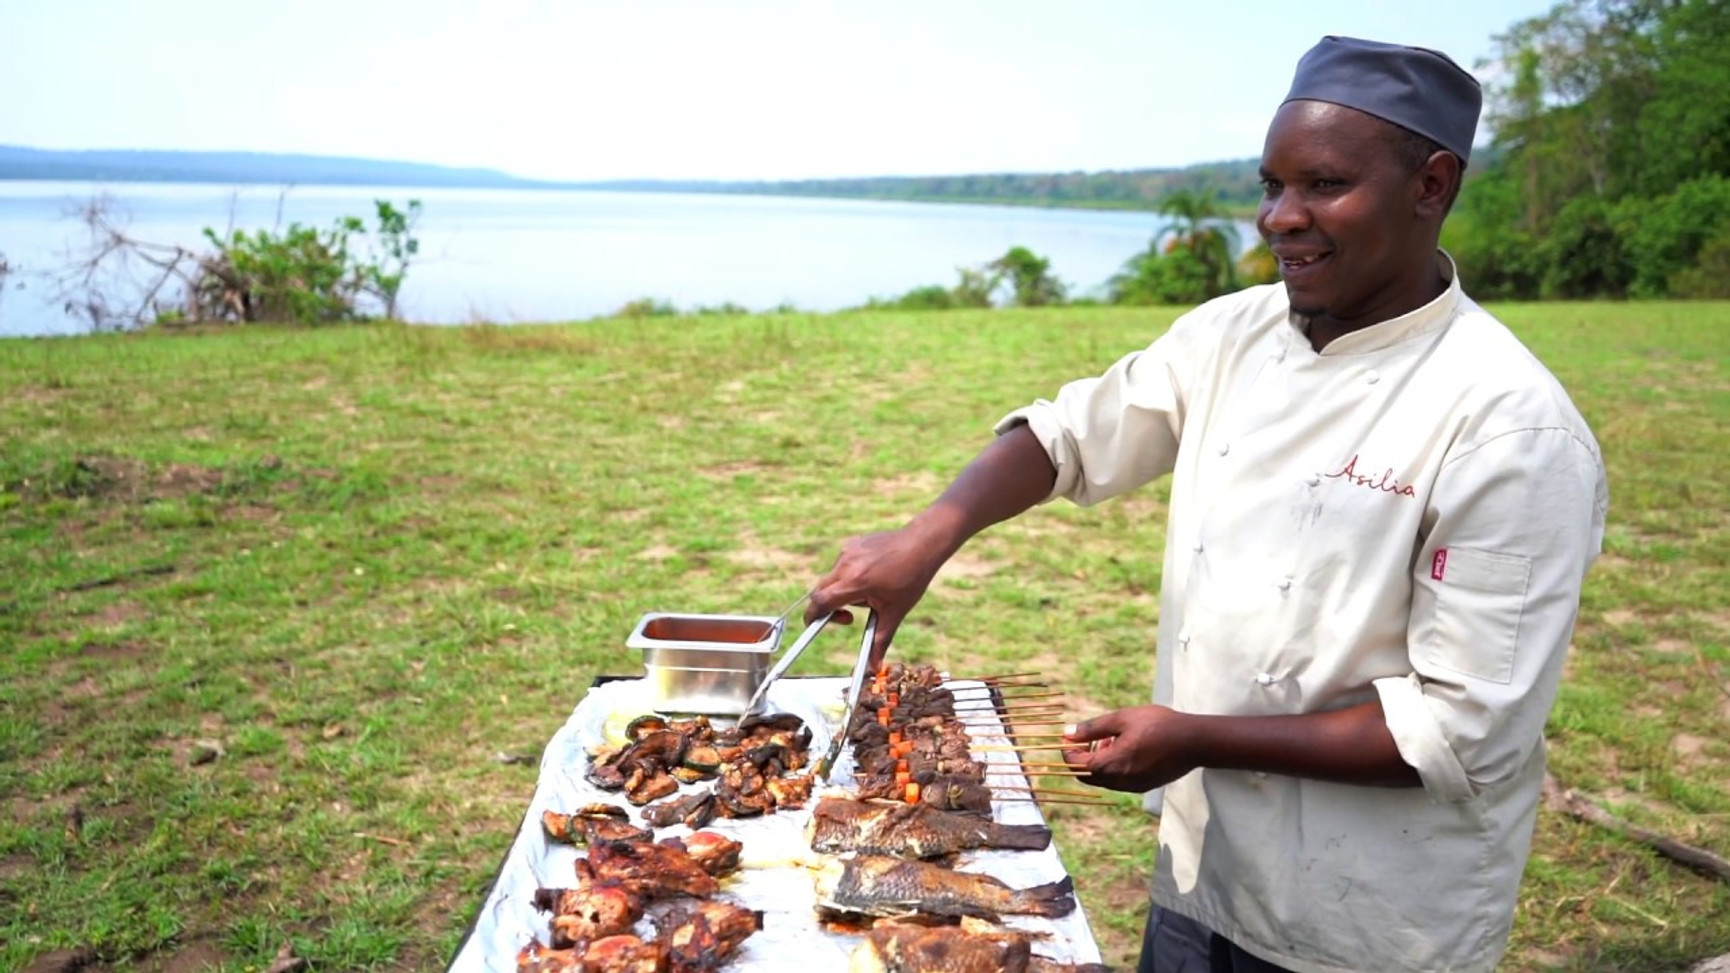 Welcome to Rubondo Chimp Camp on the Shores of Lake Victoria